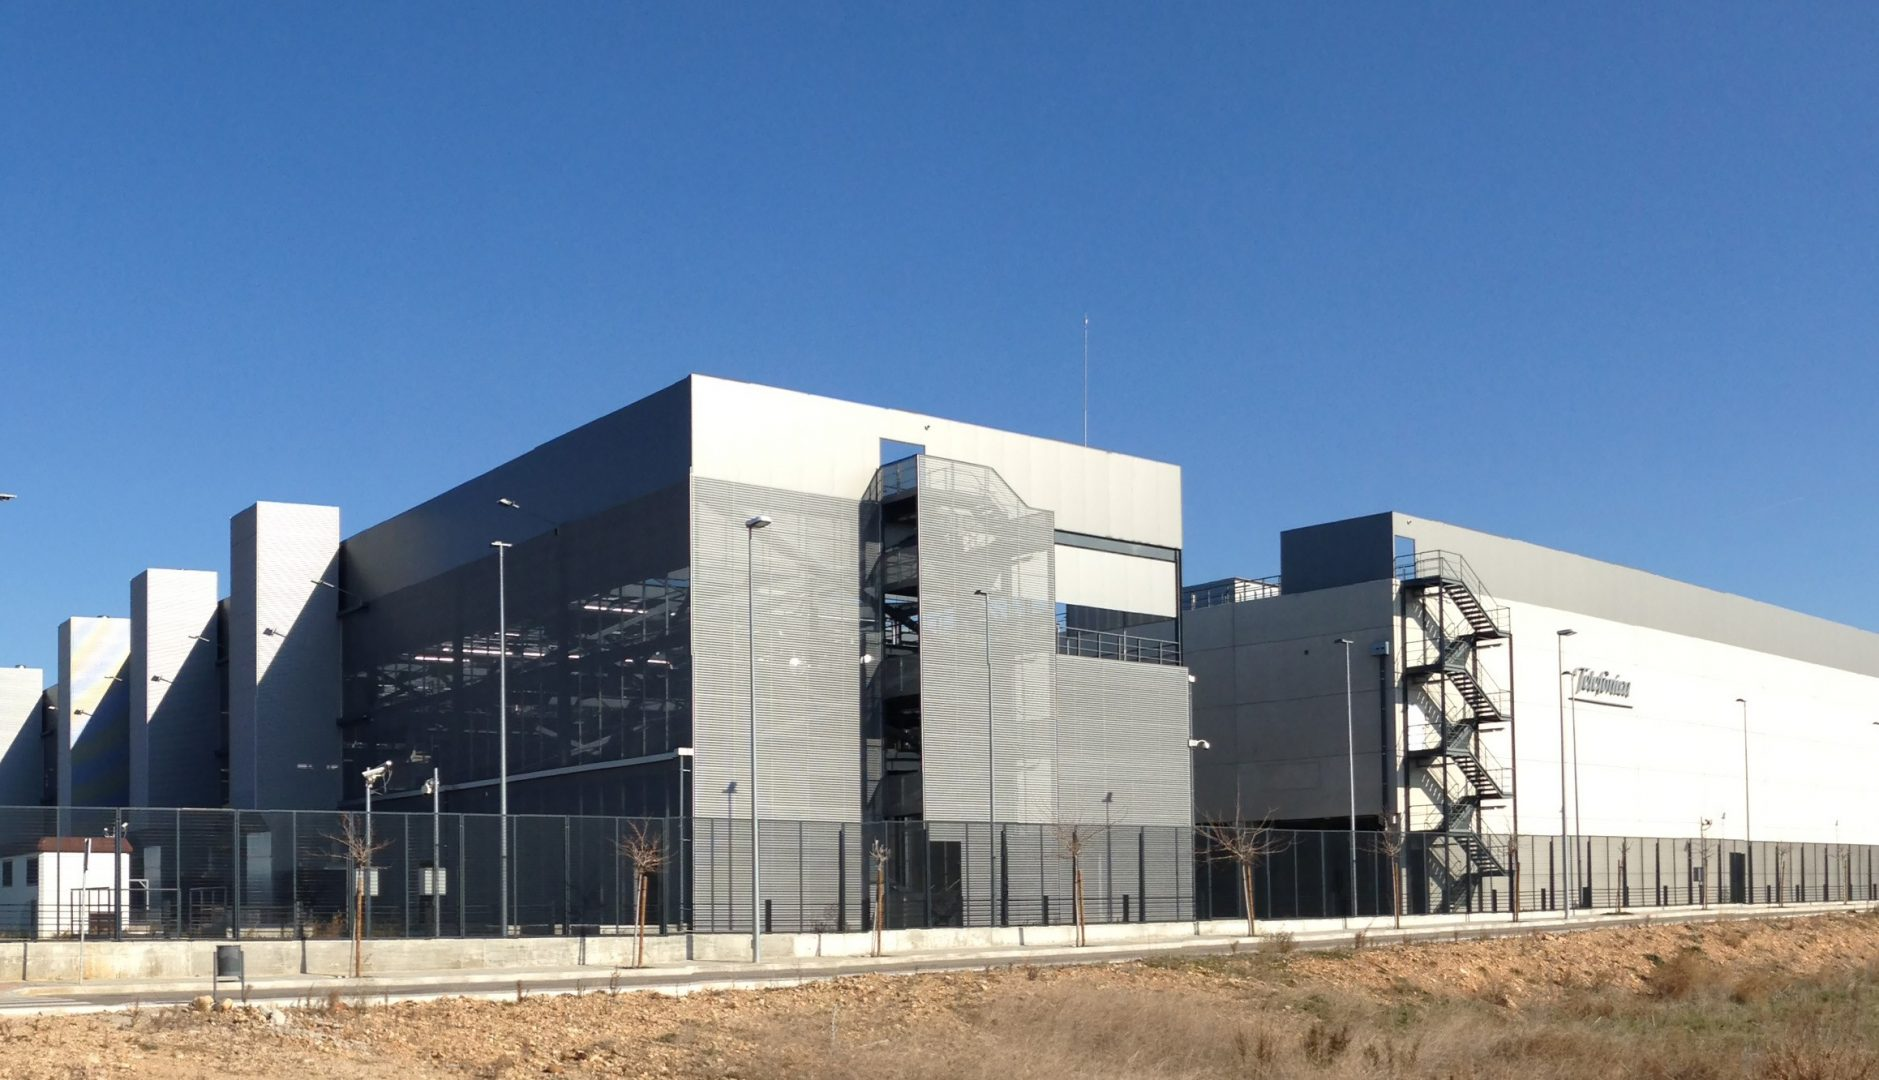 Telefonica Data Center Alcalá de Henares, Spain